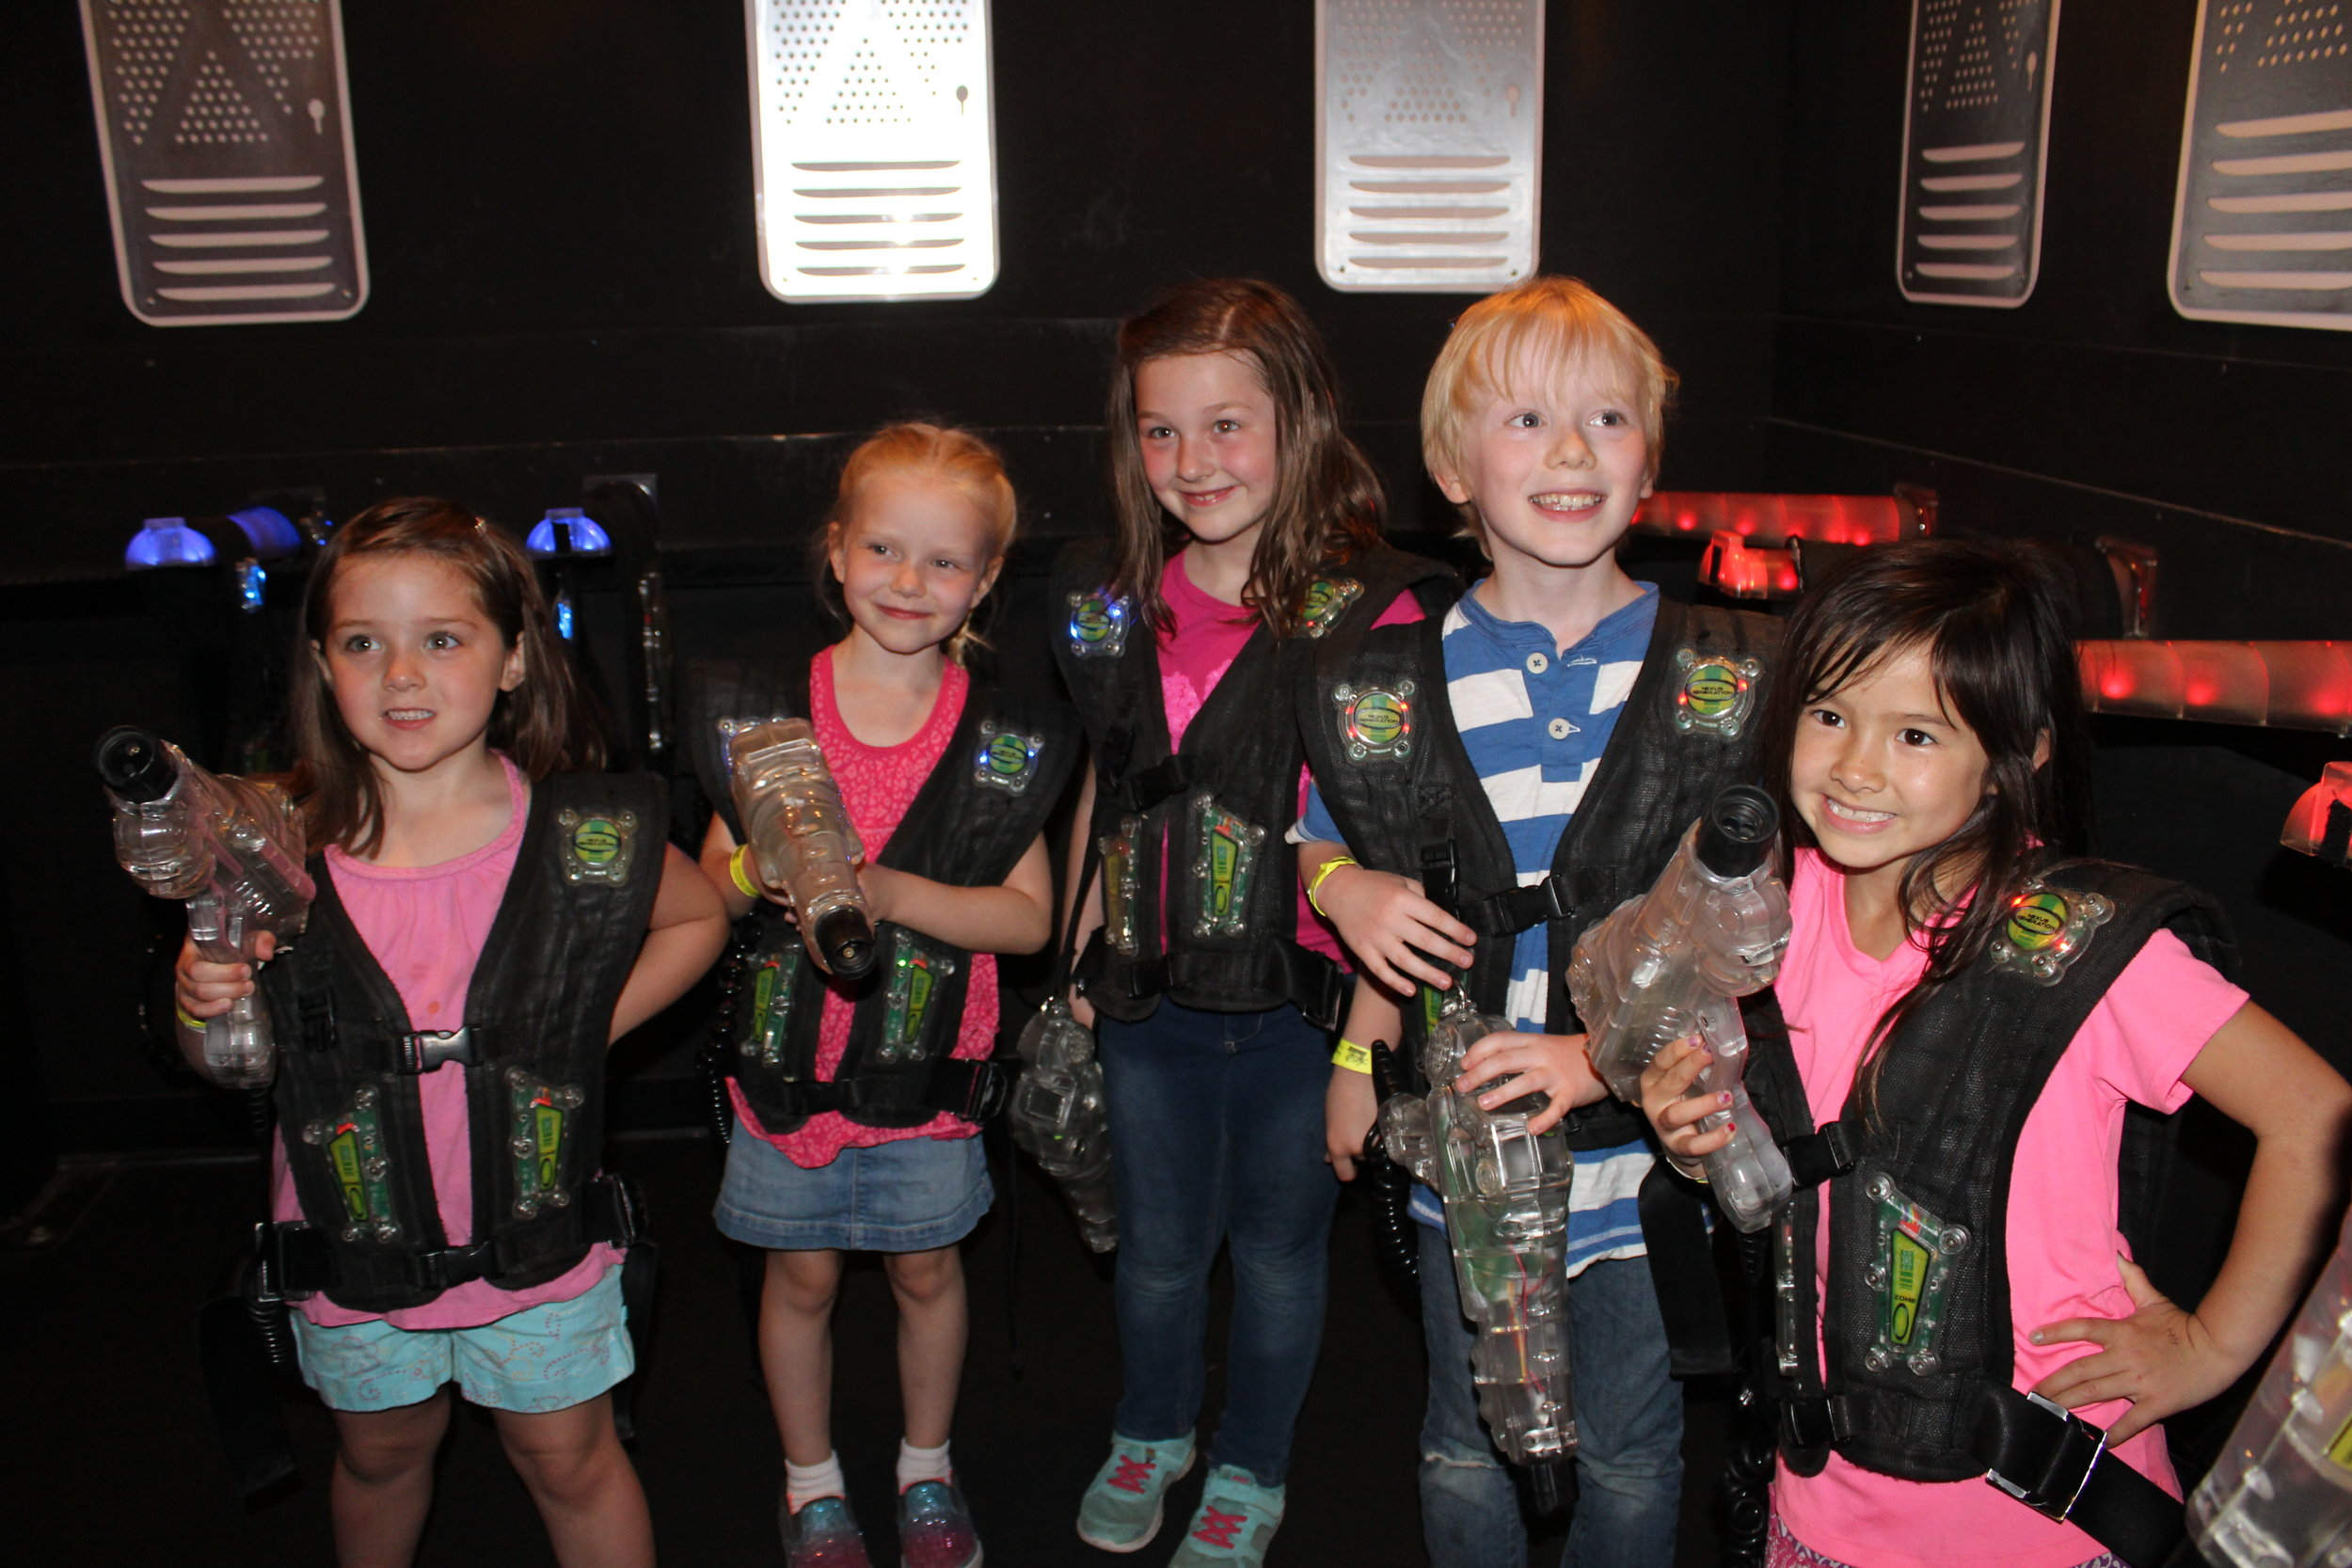 Wow_Zone_Laser_Tag_All_Kids.jpg